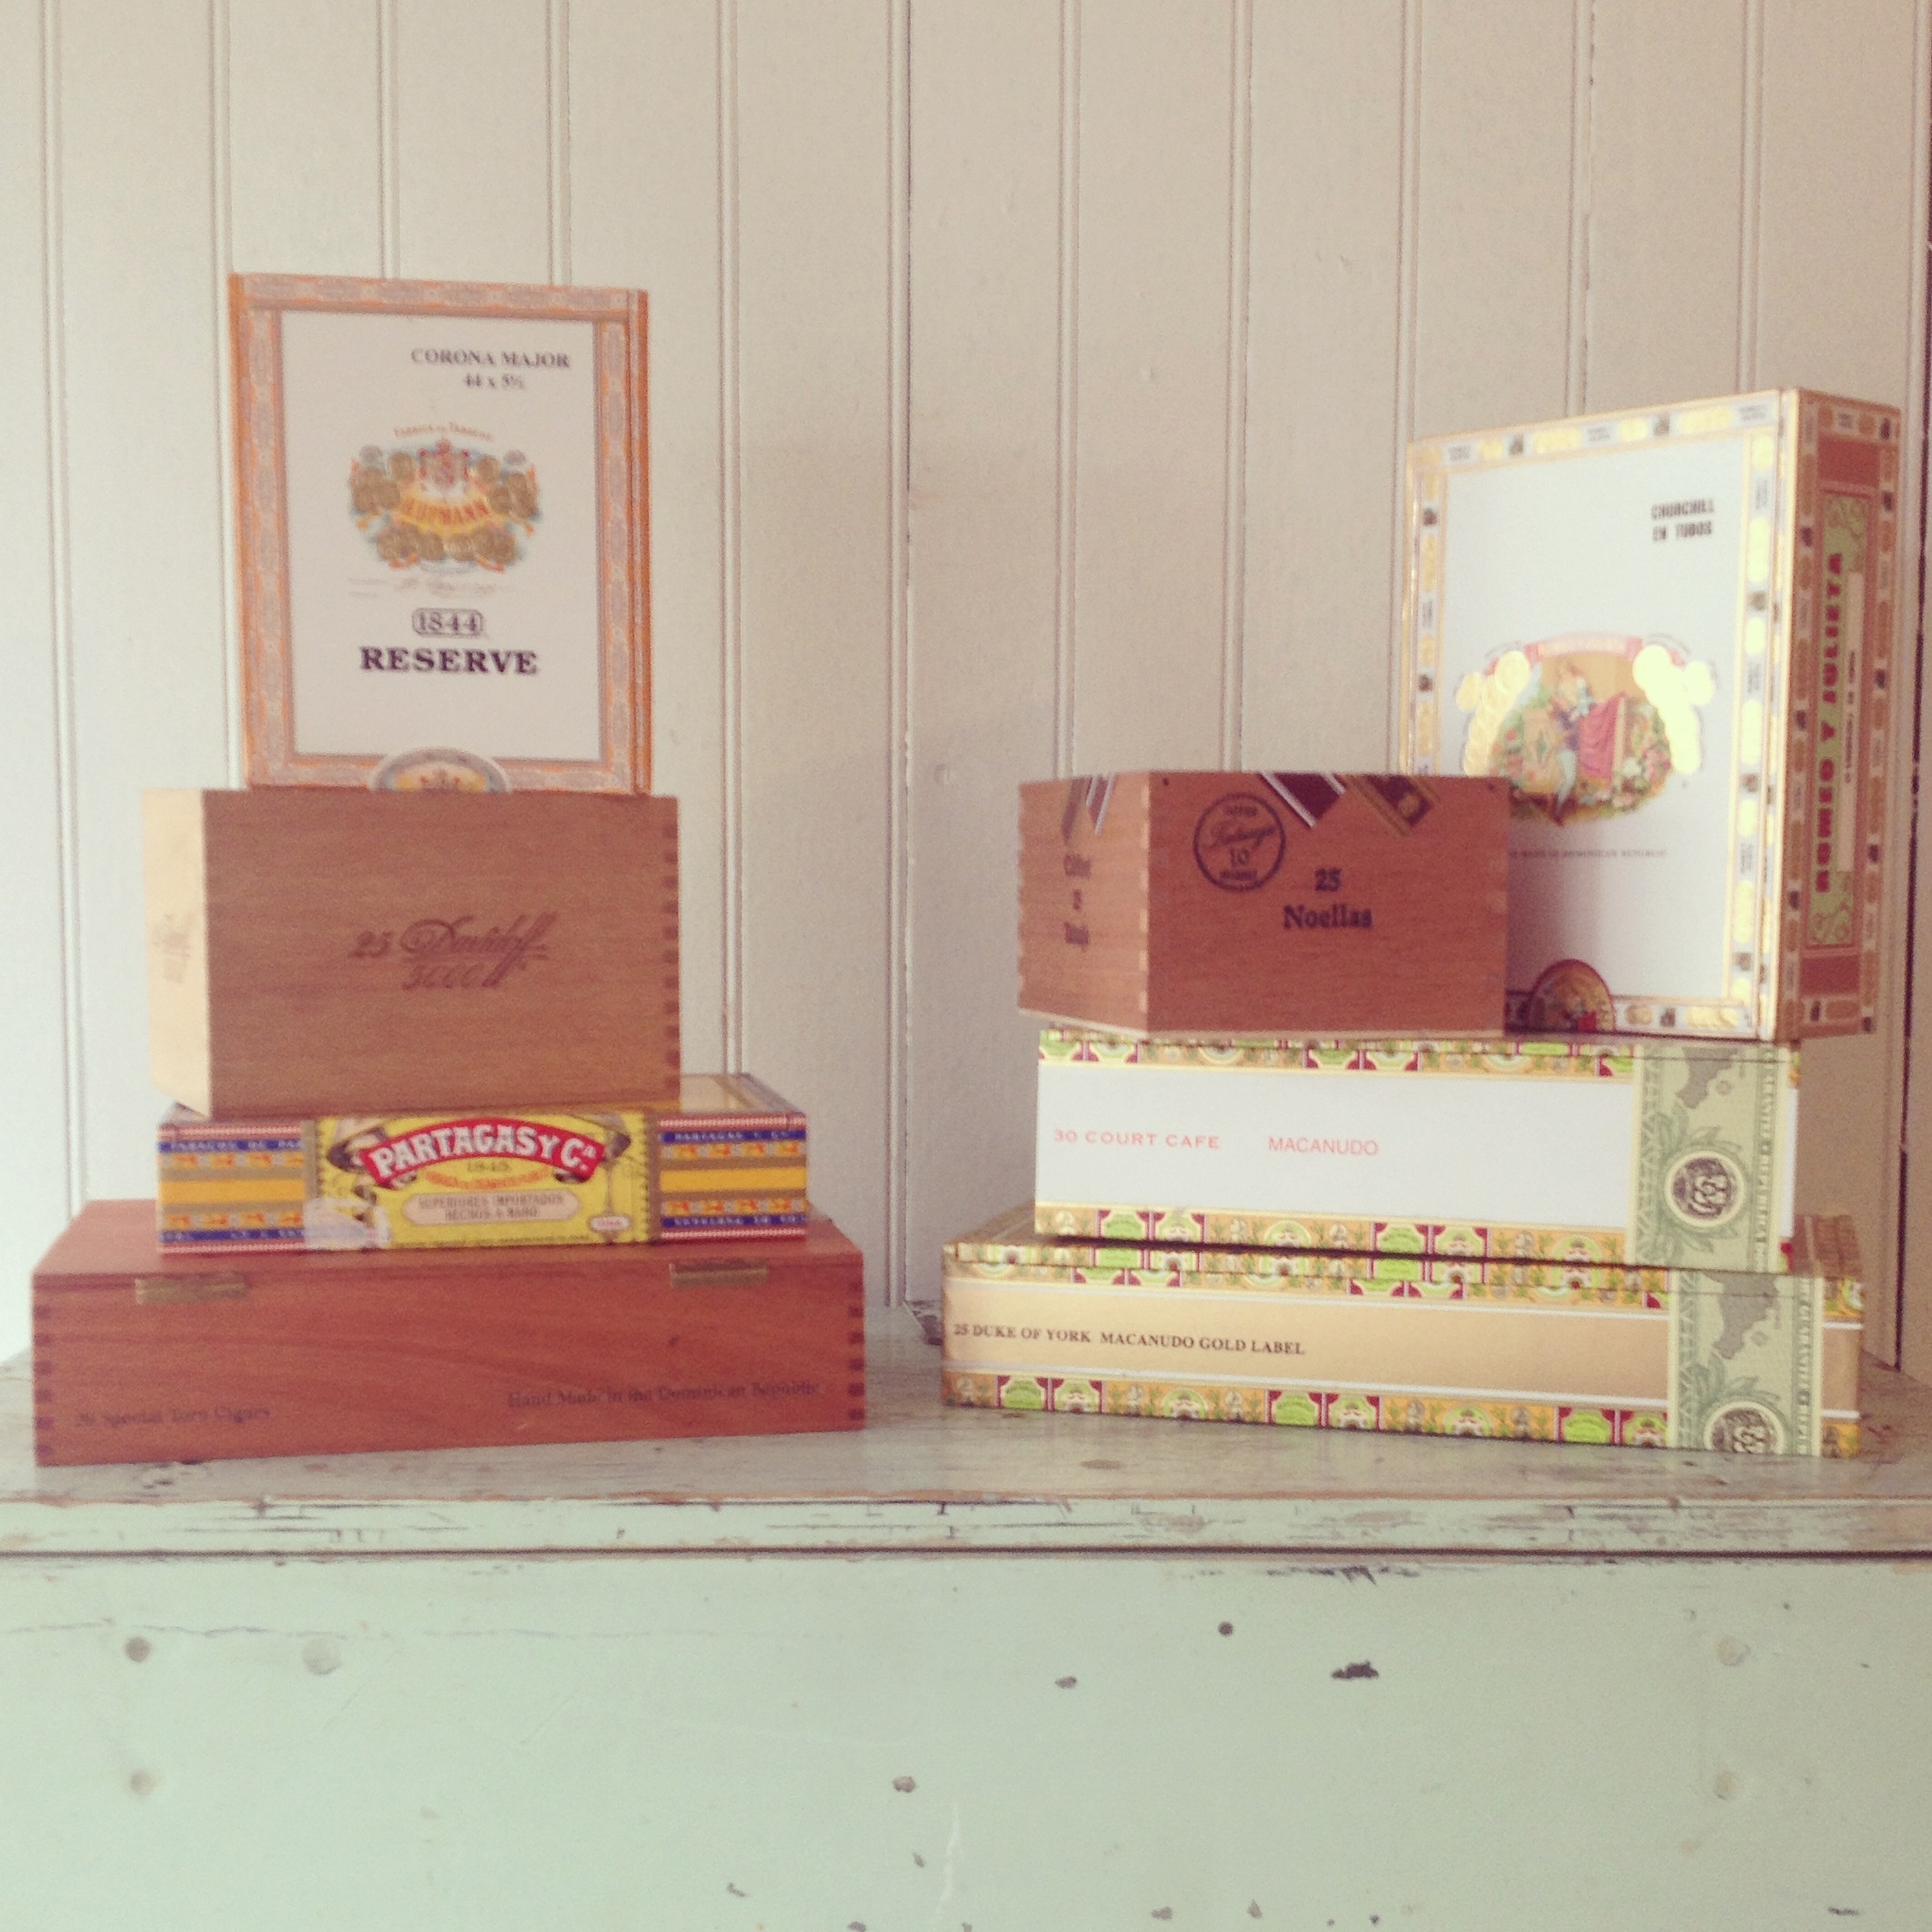 {Cigar Boxes - set of 3}